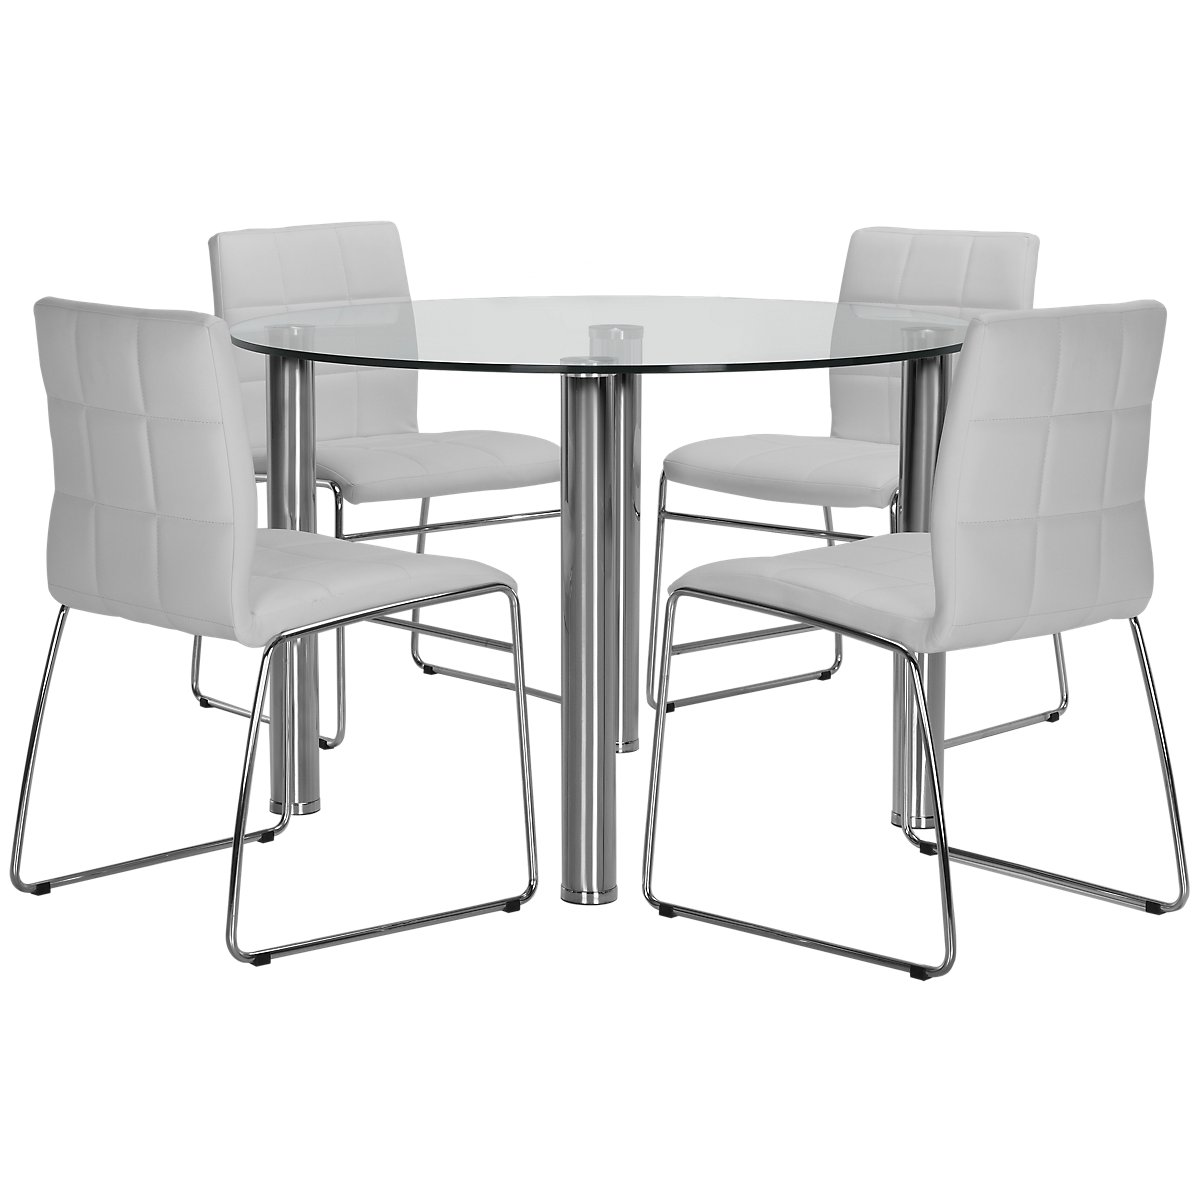 Napoli White Glass Table & 4 Upholstered Chairs